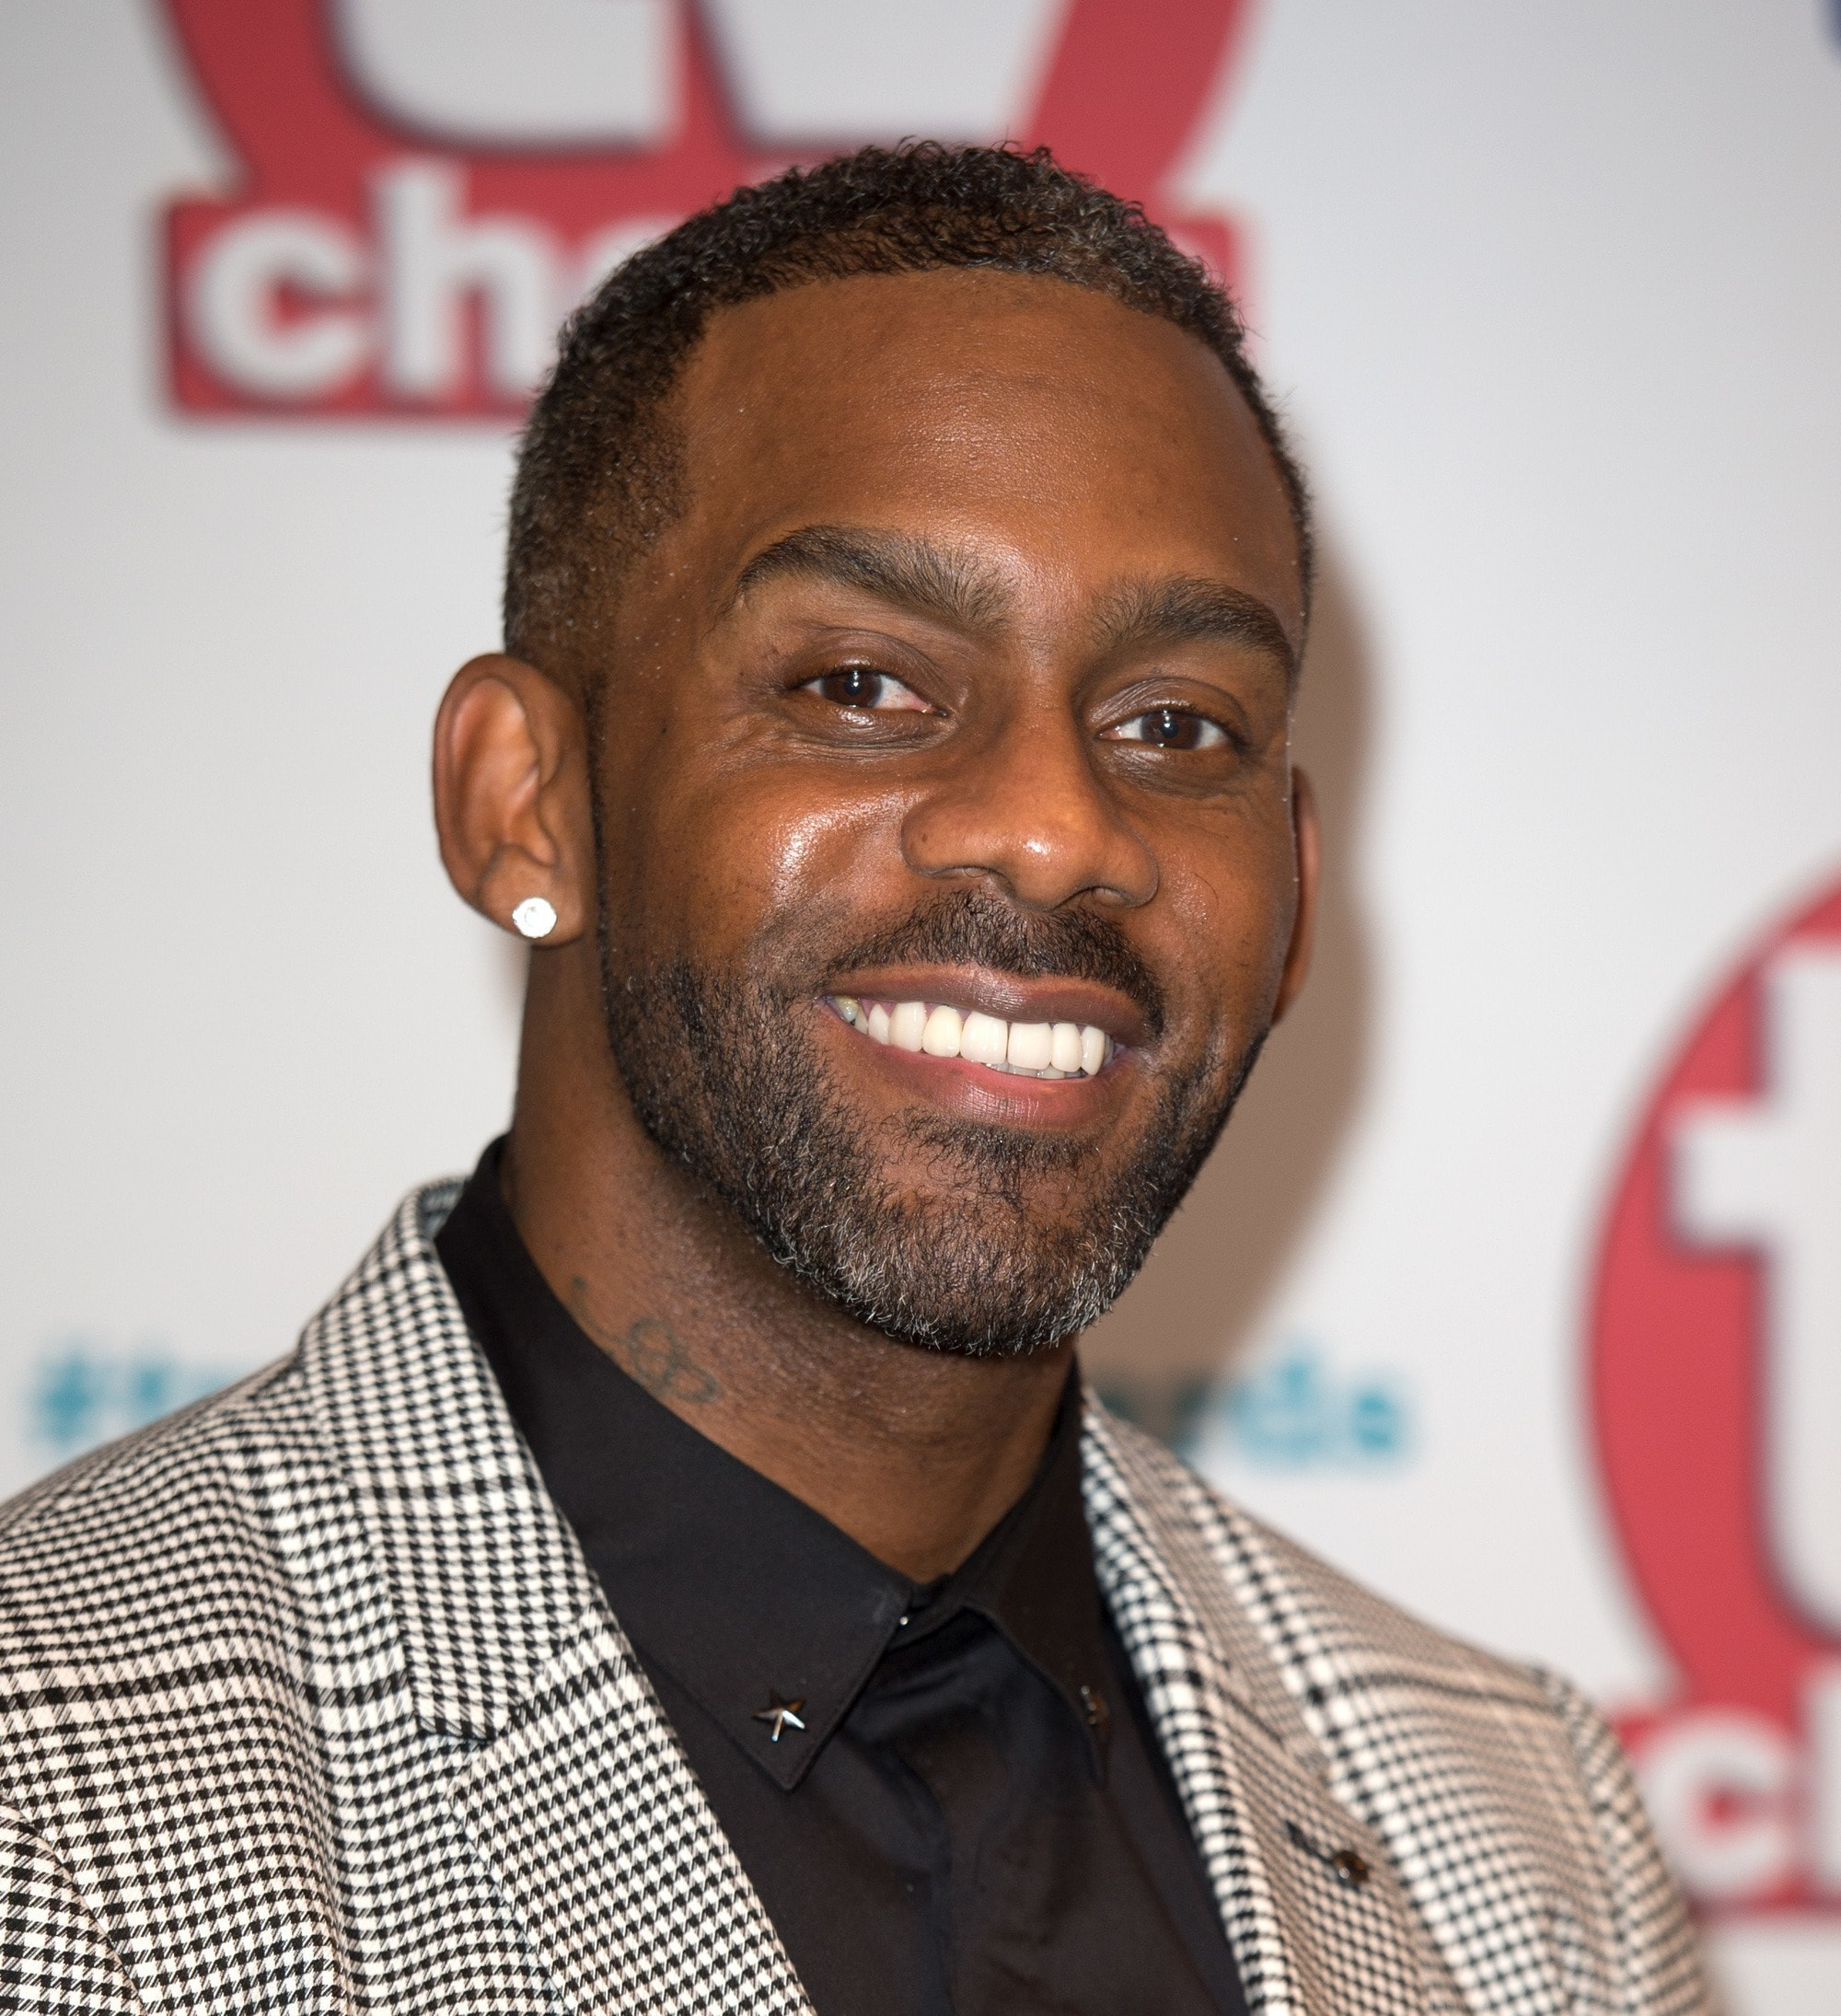 close up shot of richard blackwood with high top low fade haircut wearing smart outfit on the red carpet